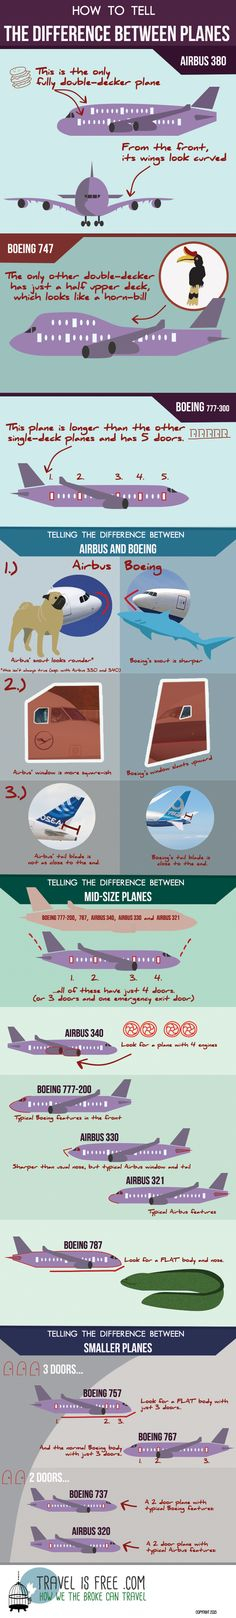 how to tell the difference between planes